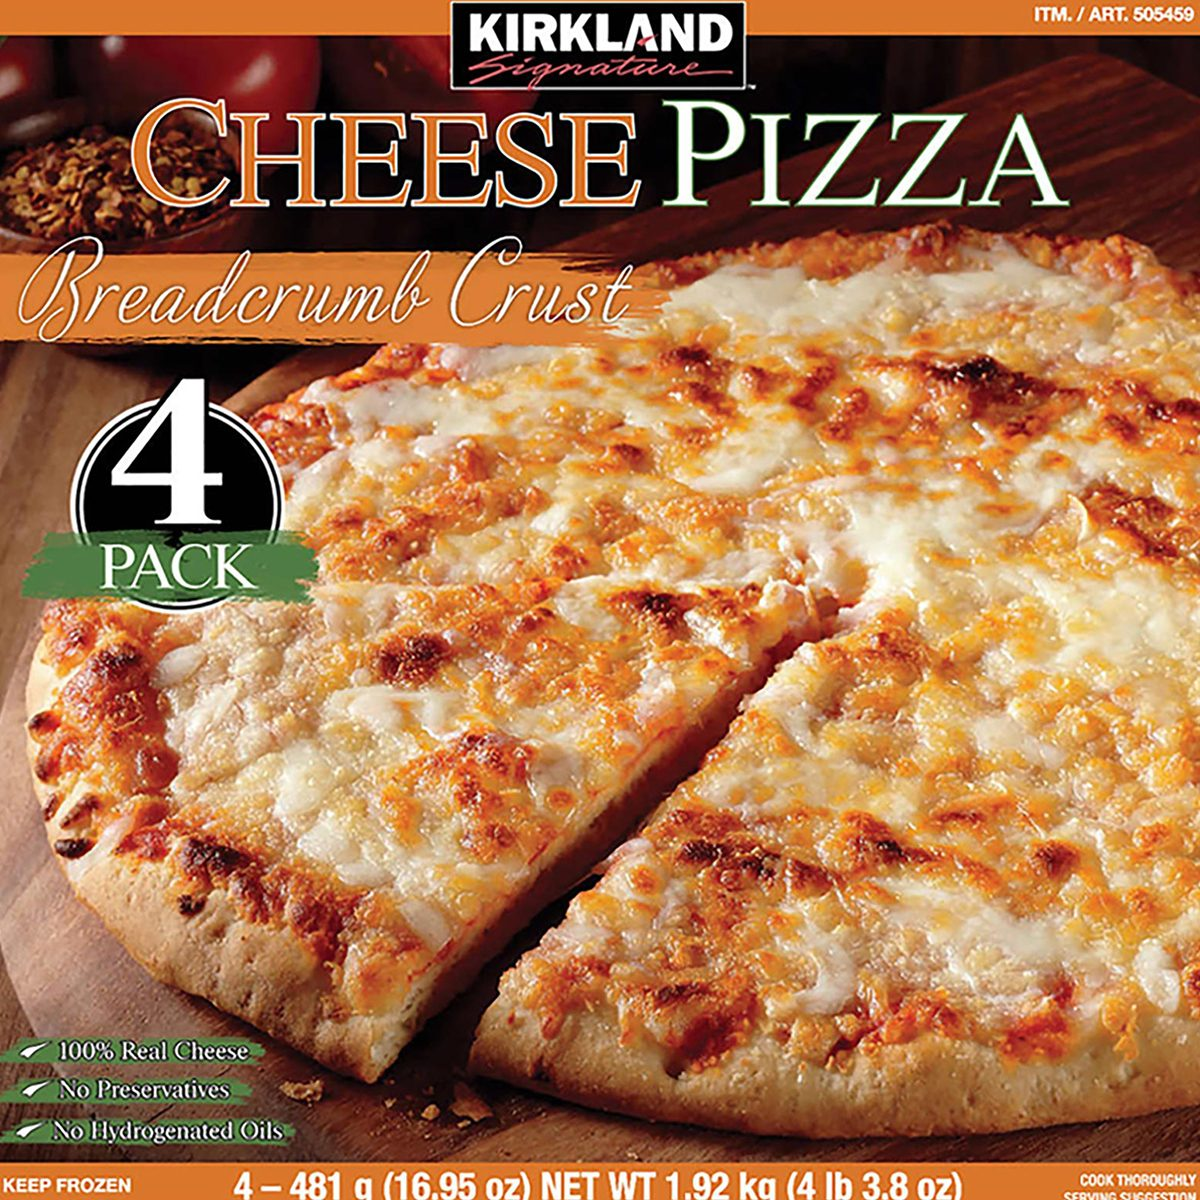 The Kitchen Four Cheese Pizza